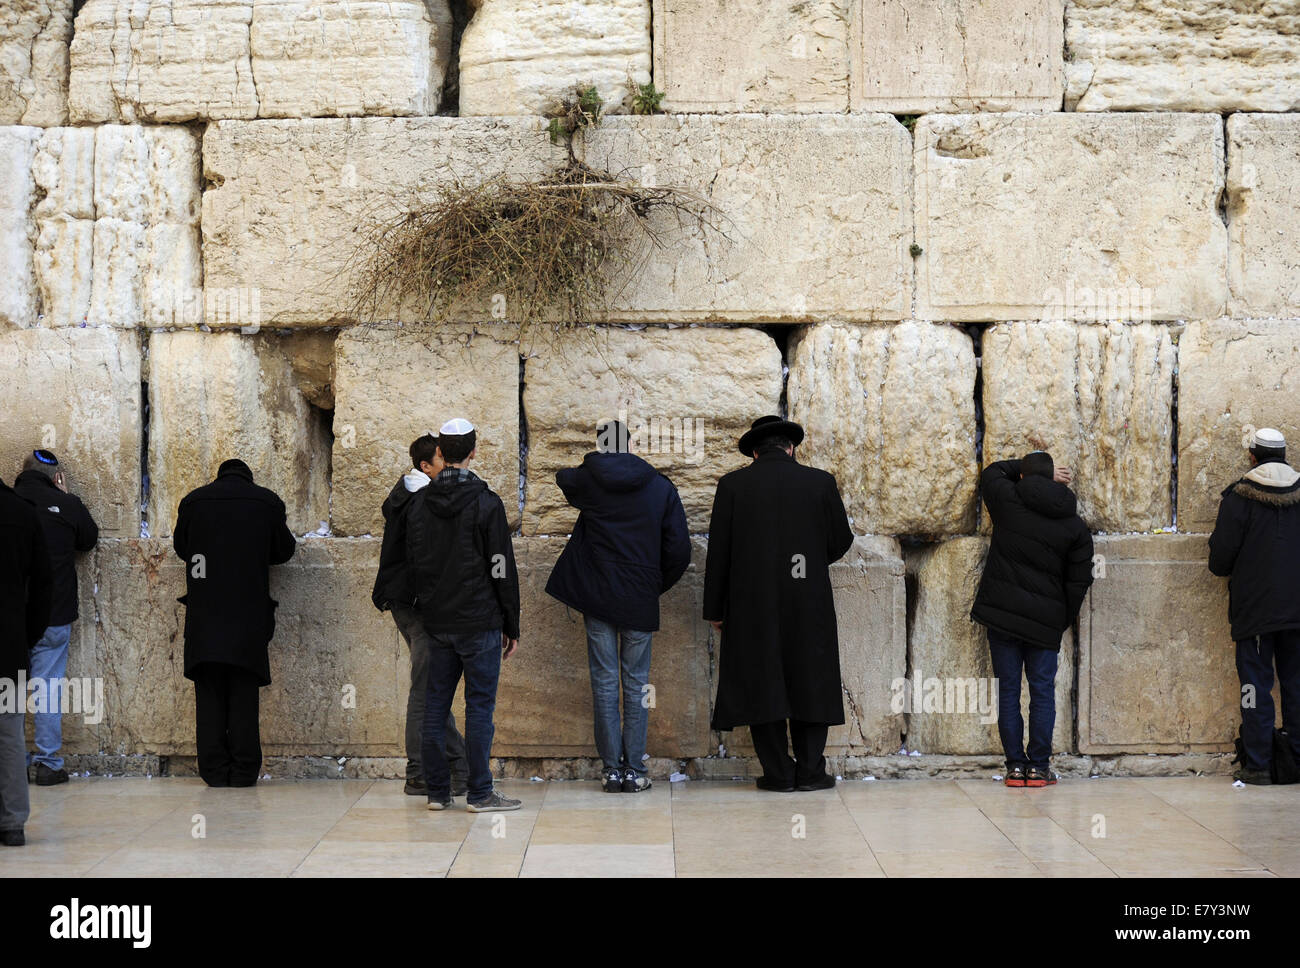 Judaism. Jews praying at the Western Wall. Jerusalem. Israel. - Stock Image